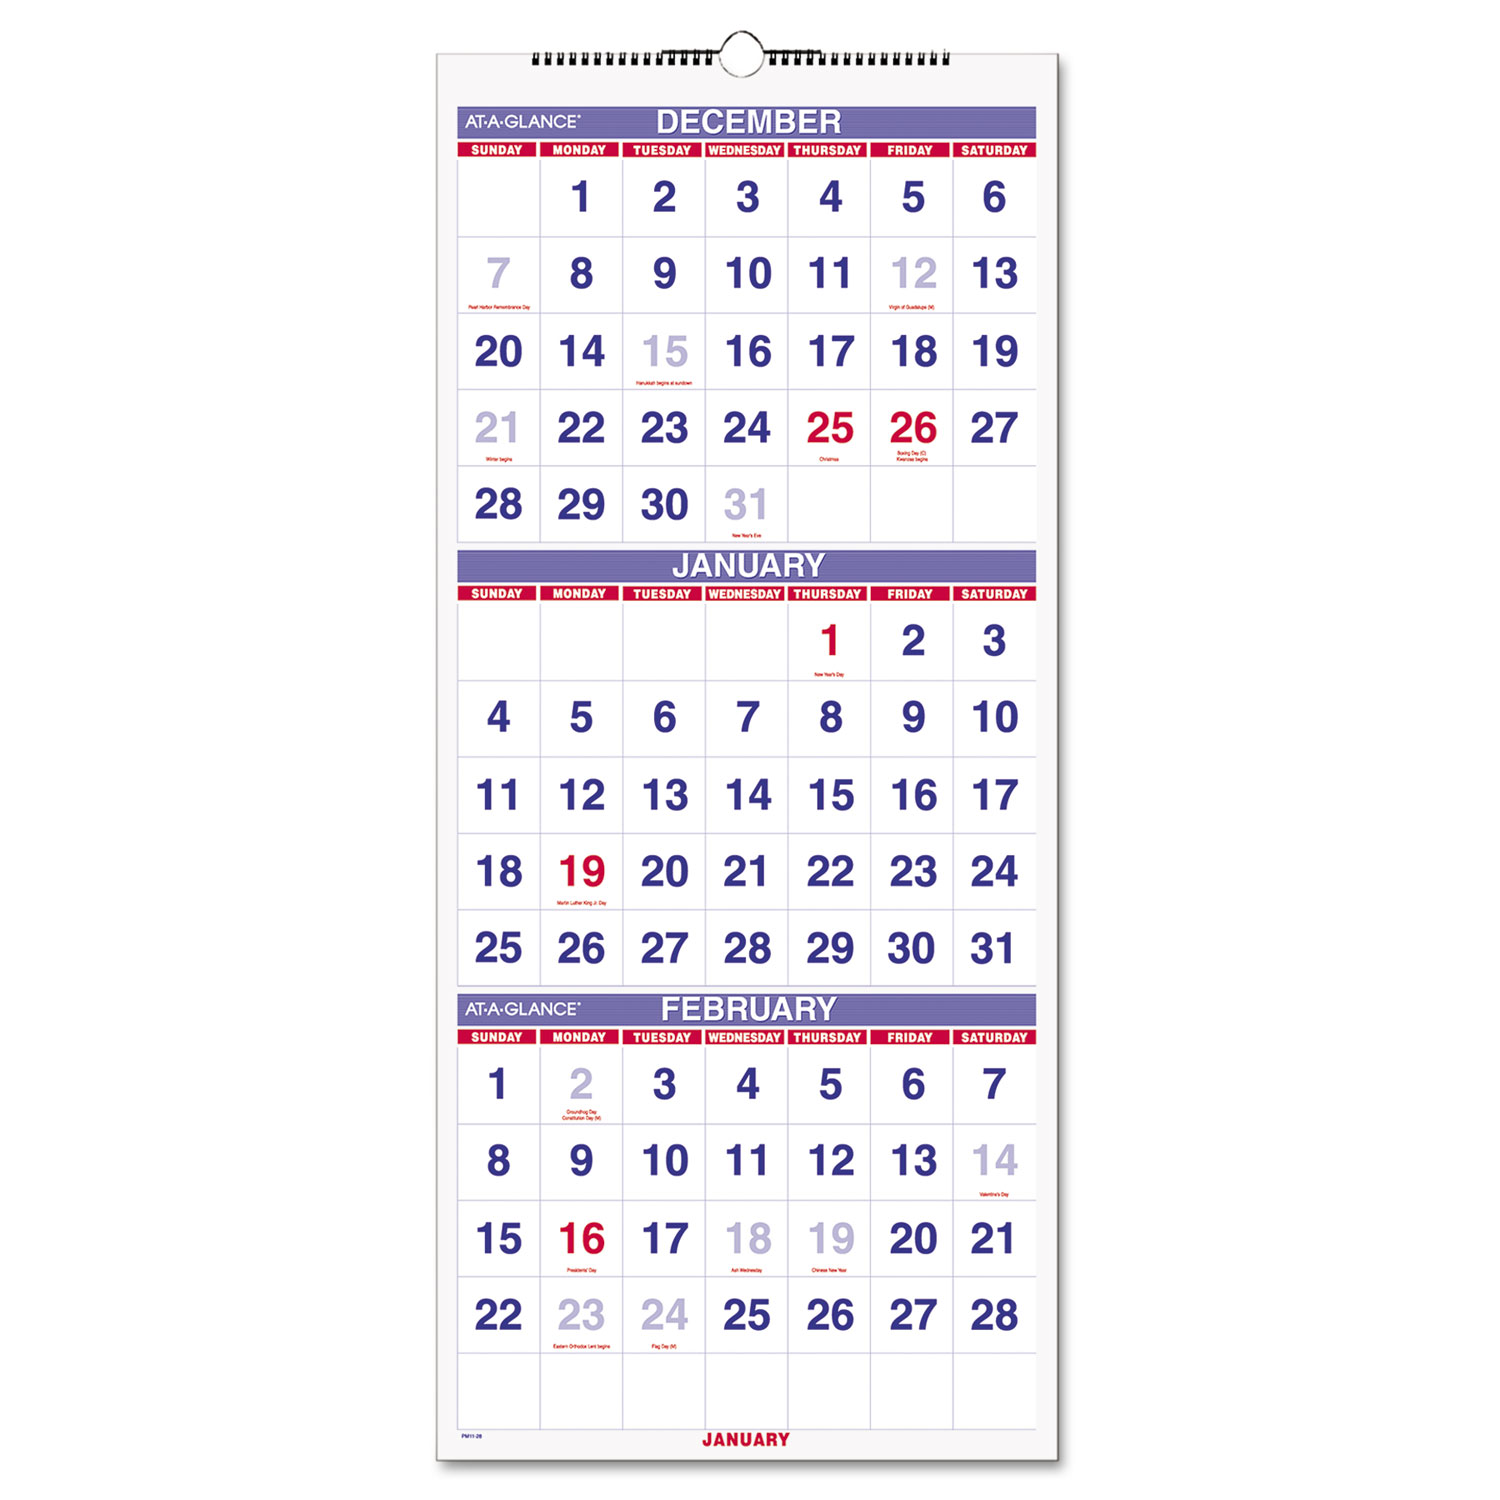 Vertical-Format Three-Month Reference Wall Calendar, 12 1/4 x 27, 2016-2018